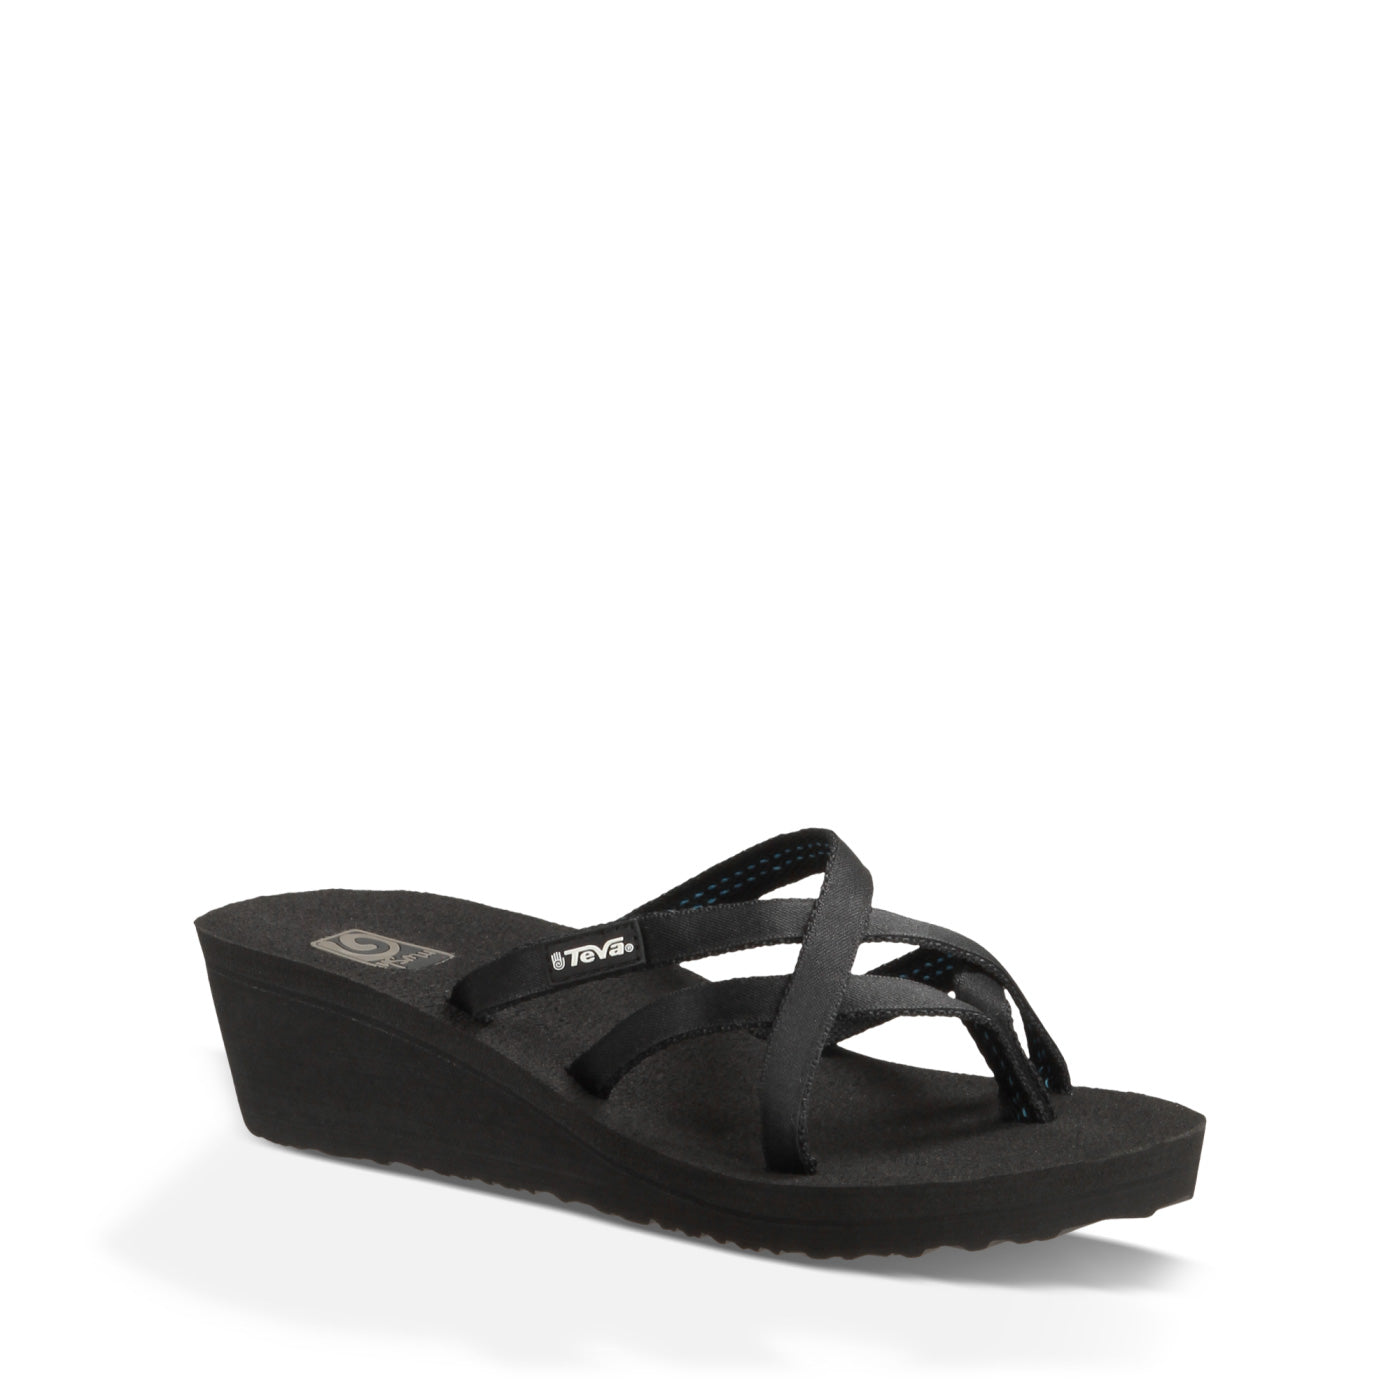 'Teva' 1000099 - Mush Mandlyn Wedge Sandal - Black